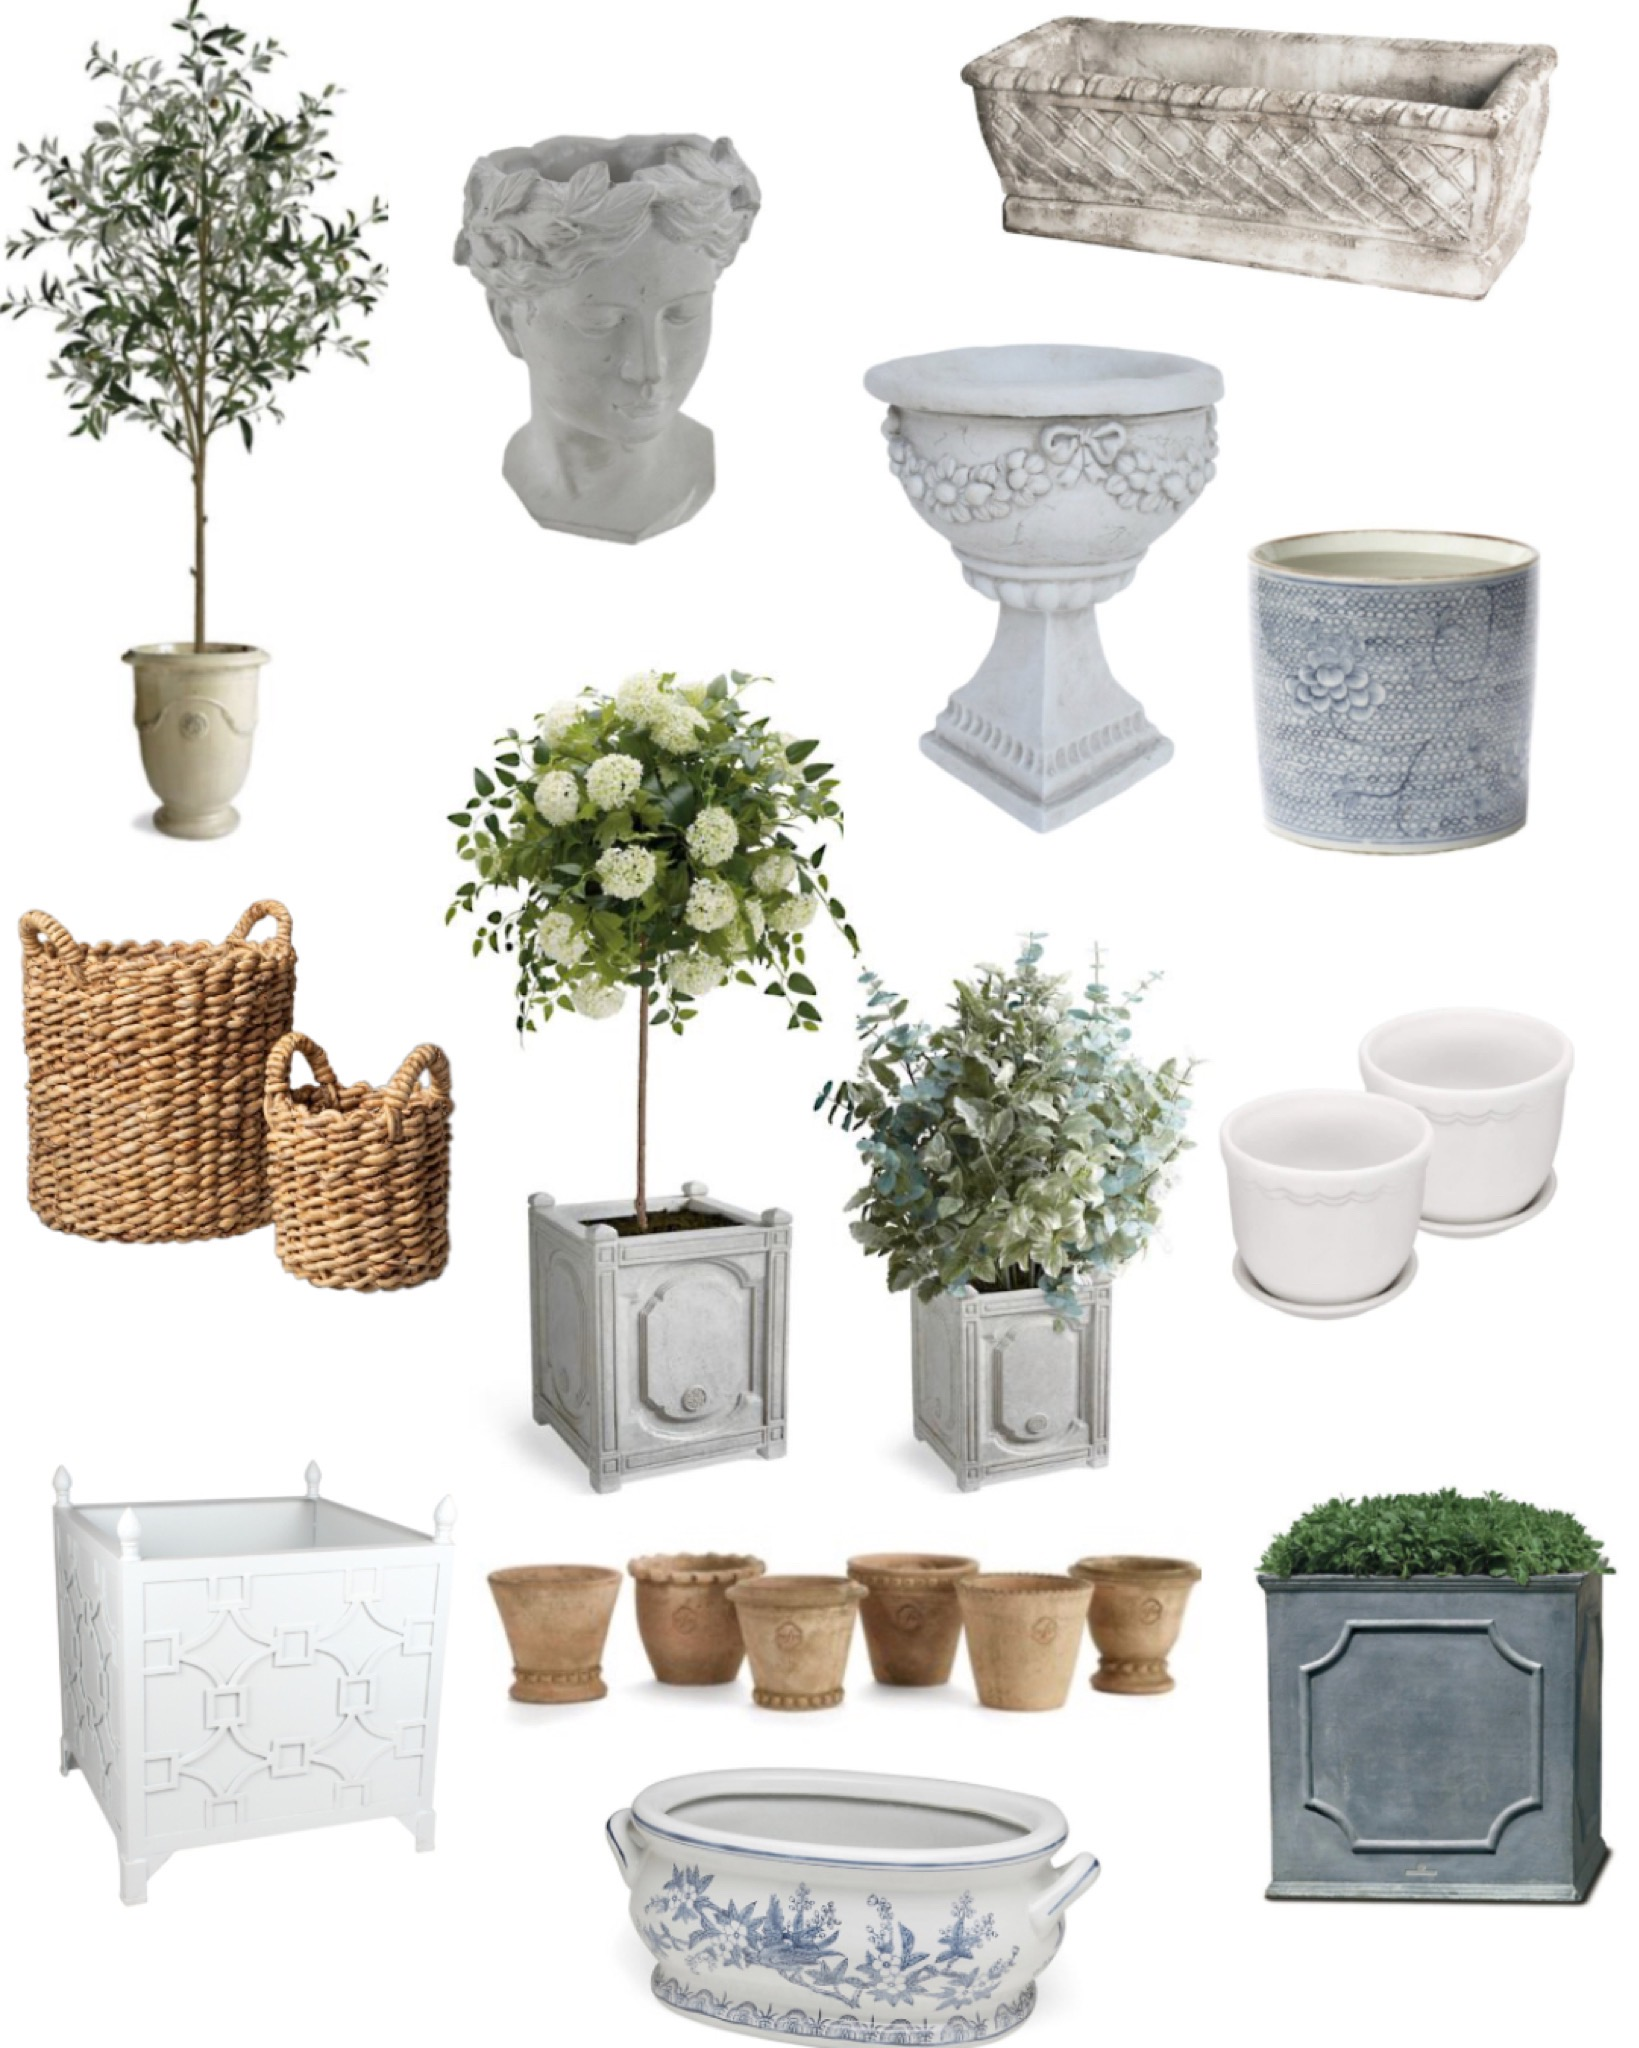 Planters & Urns